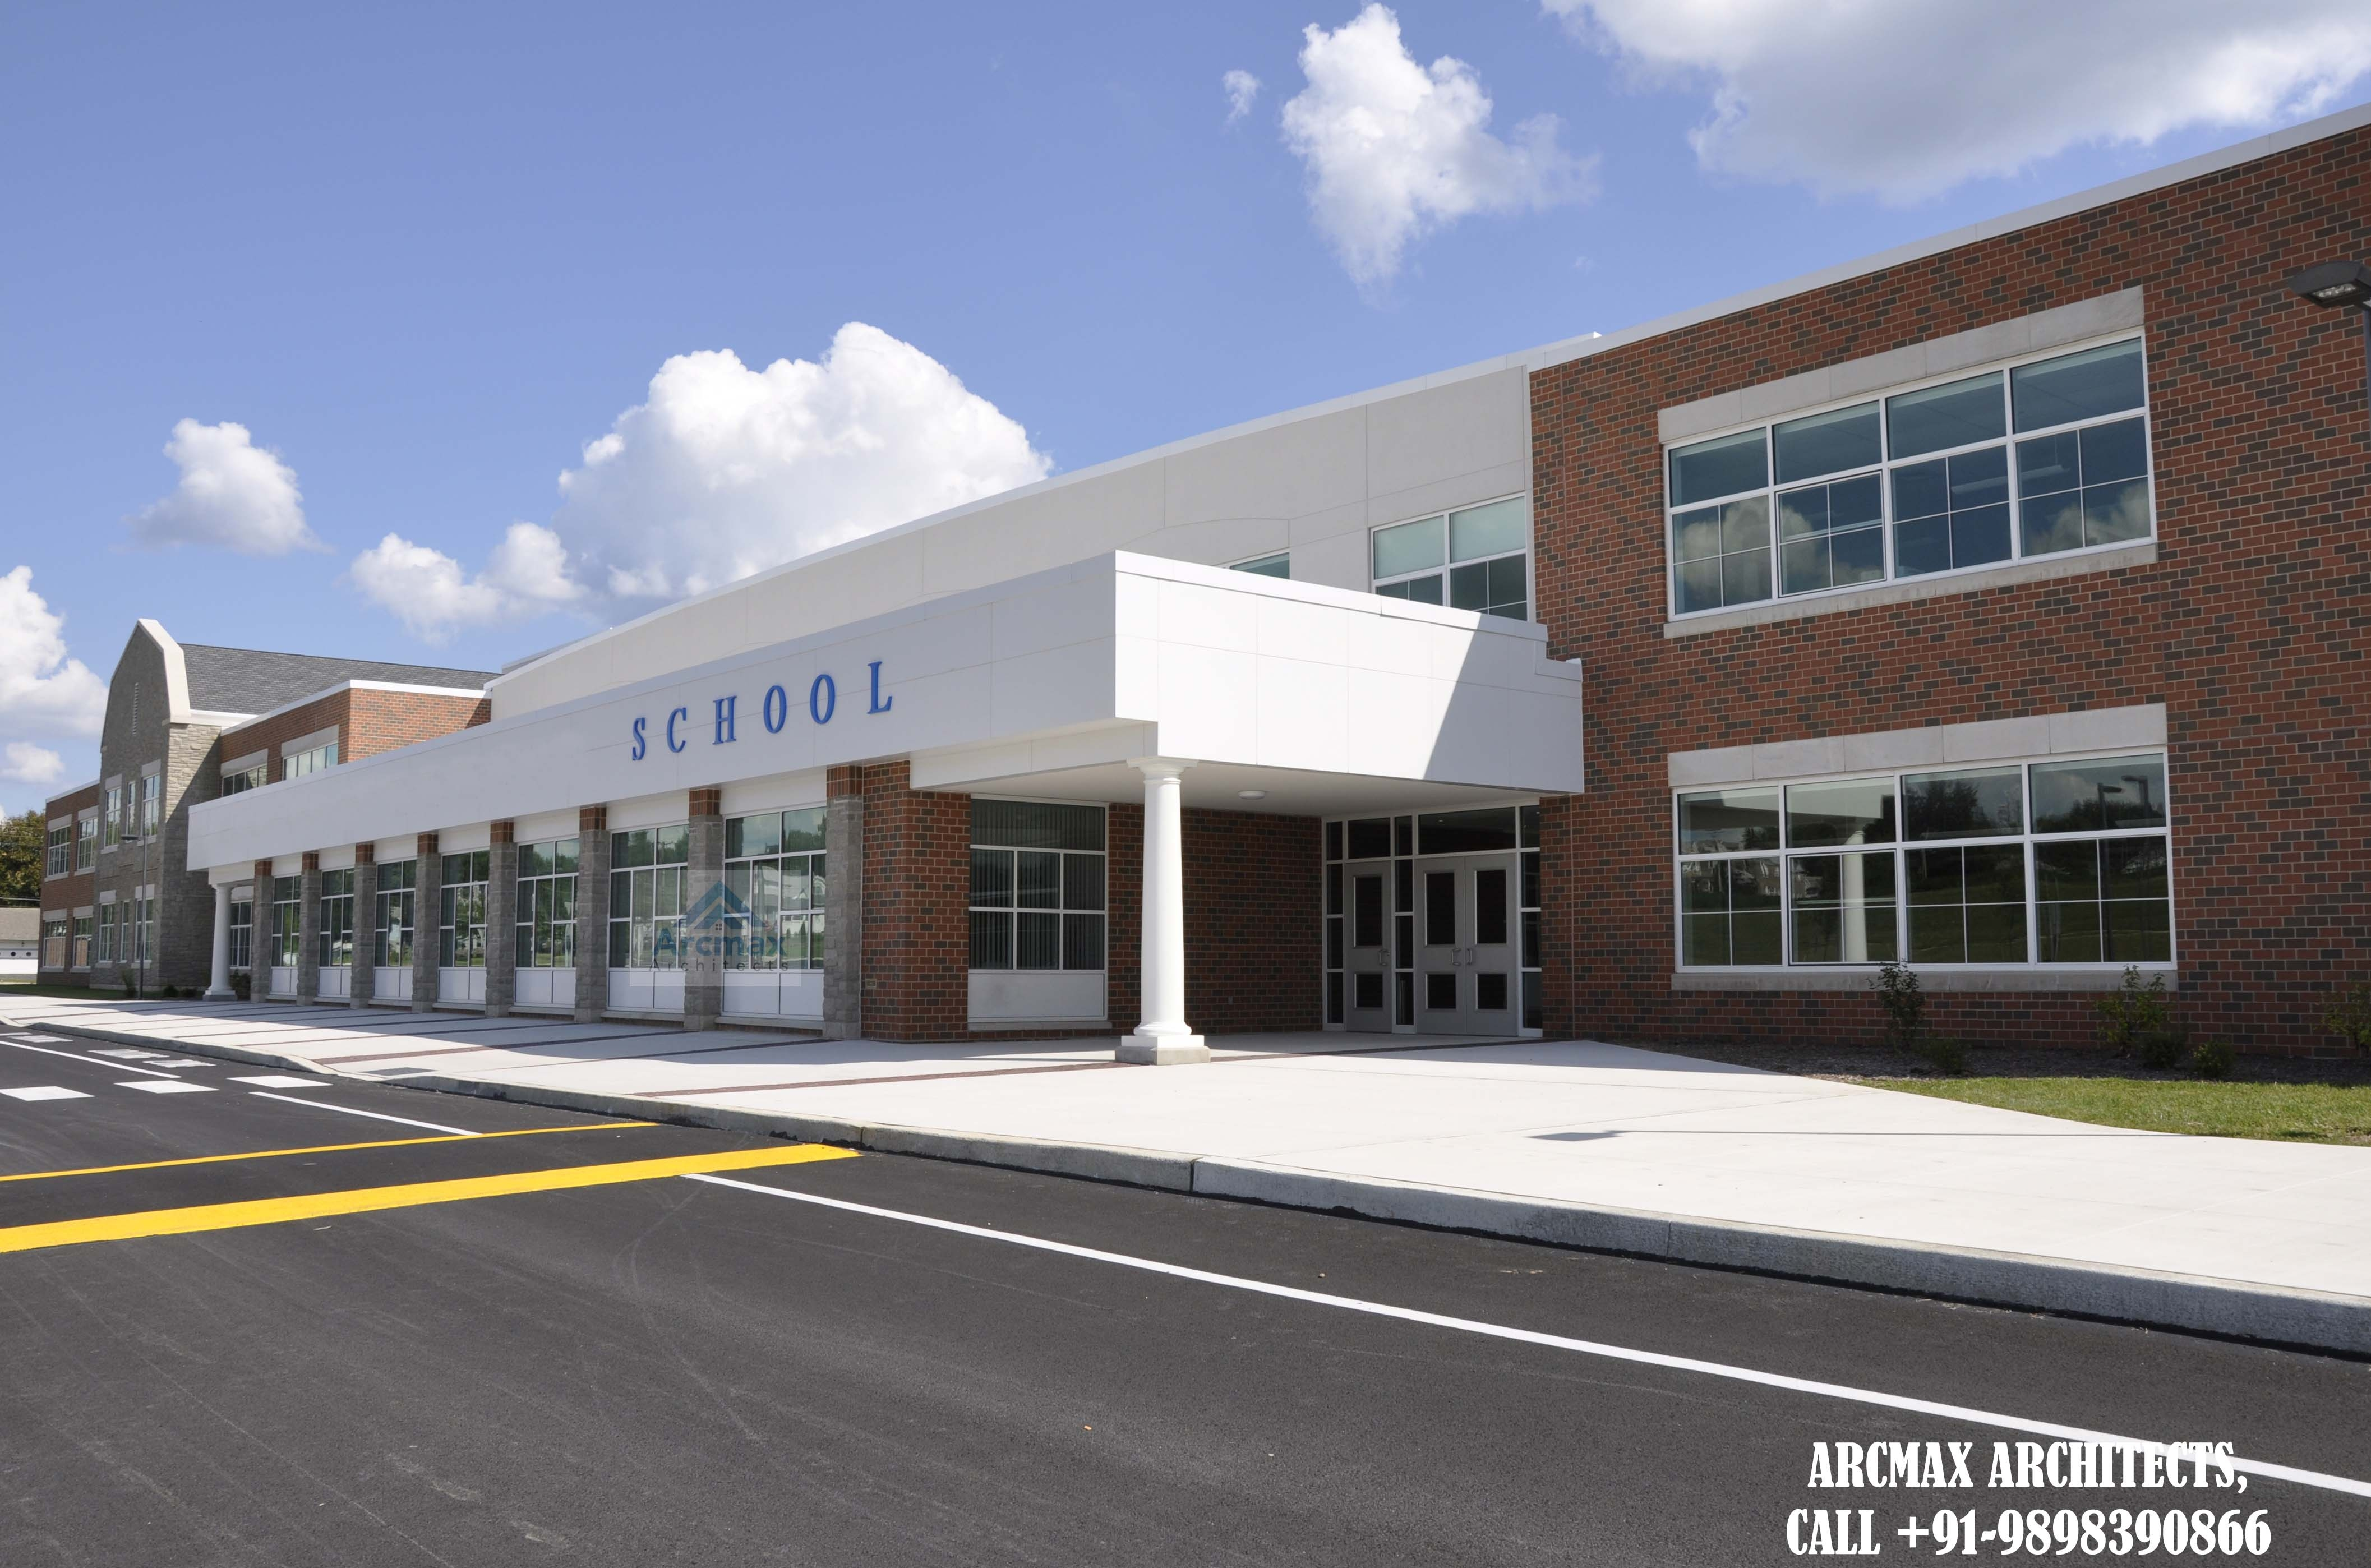 Hire arcmax architects and planners for high school building design and planning services anywhere in indiausauk and worldwide including all floor plans